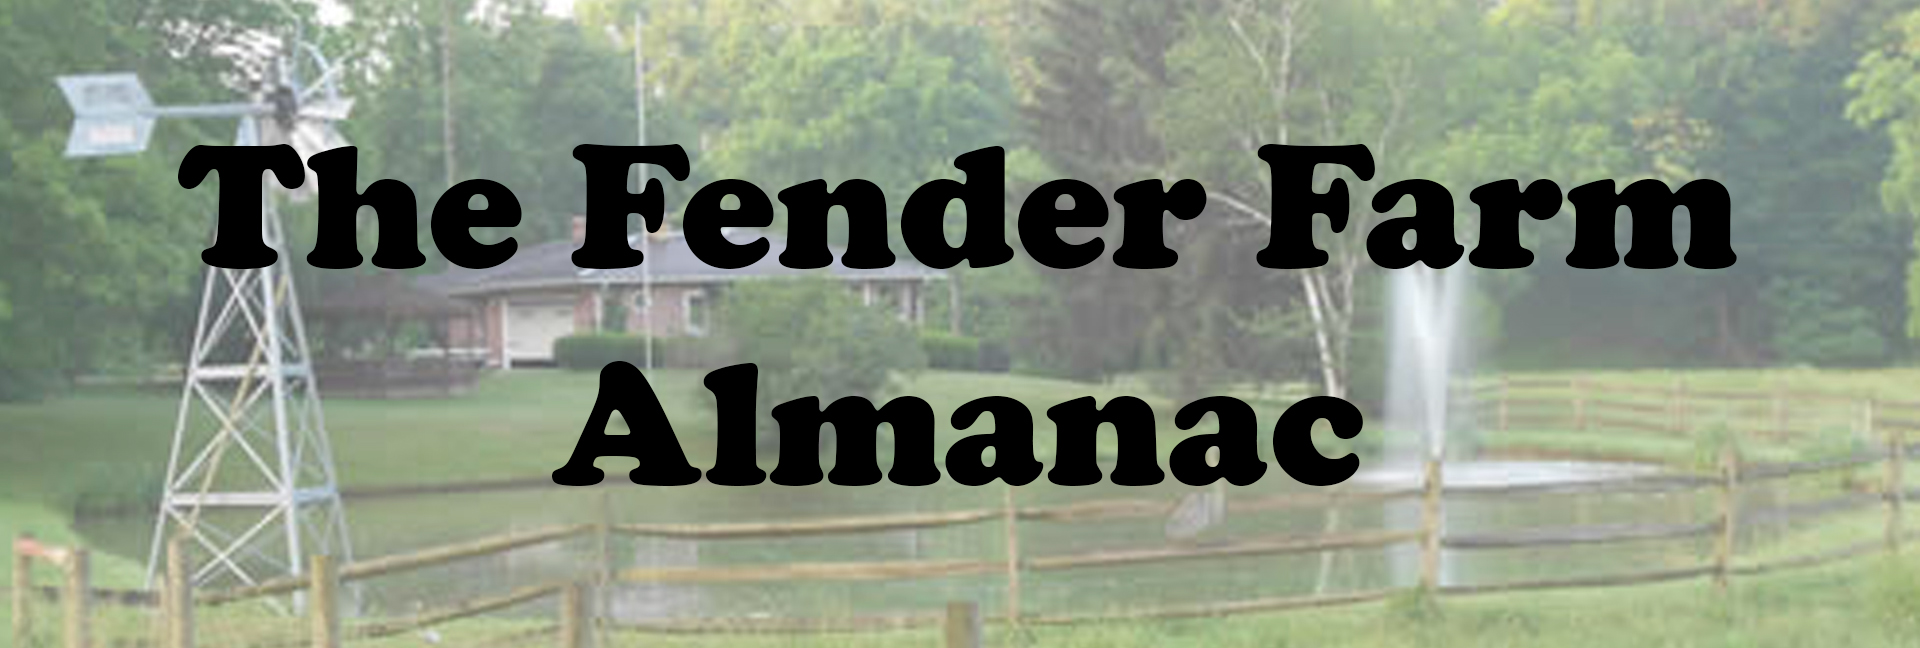 fender-farm-almanac